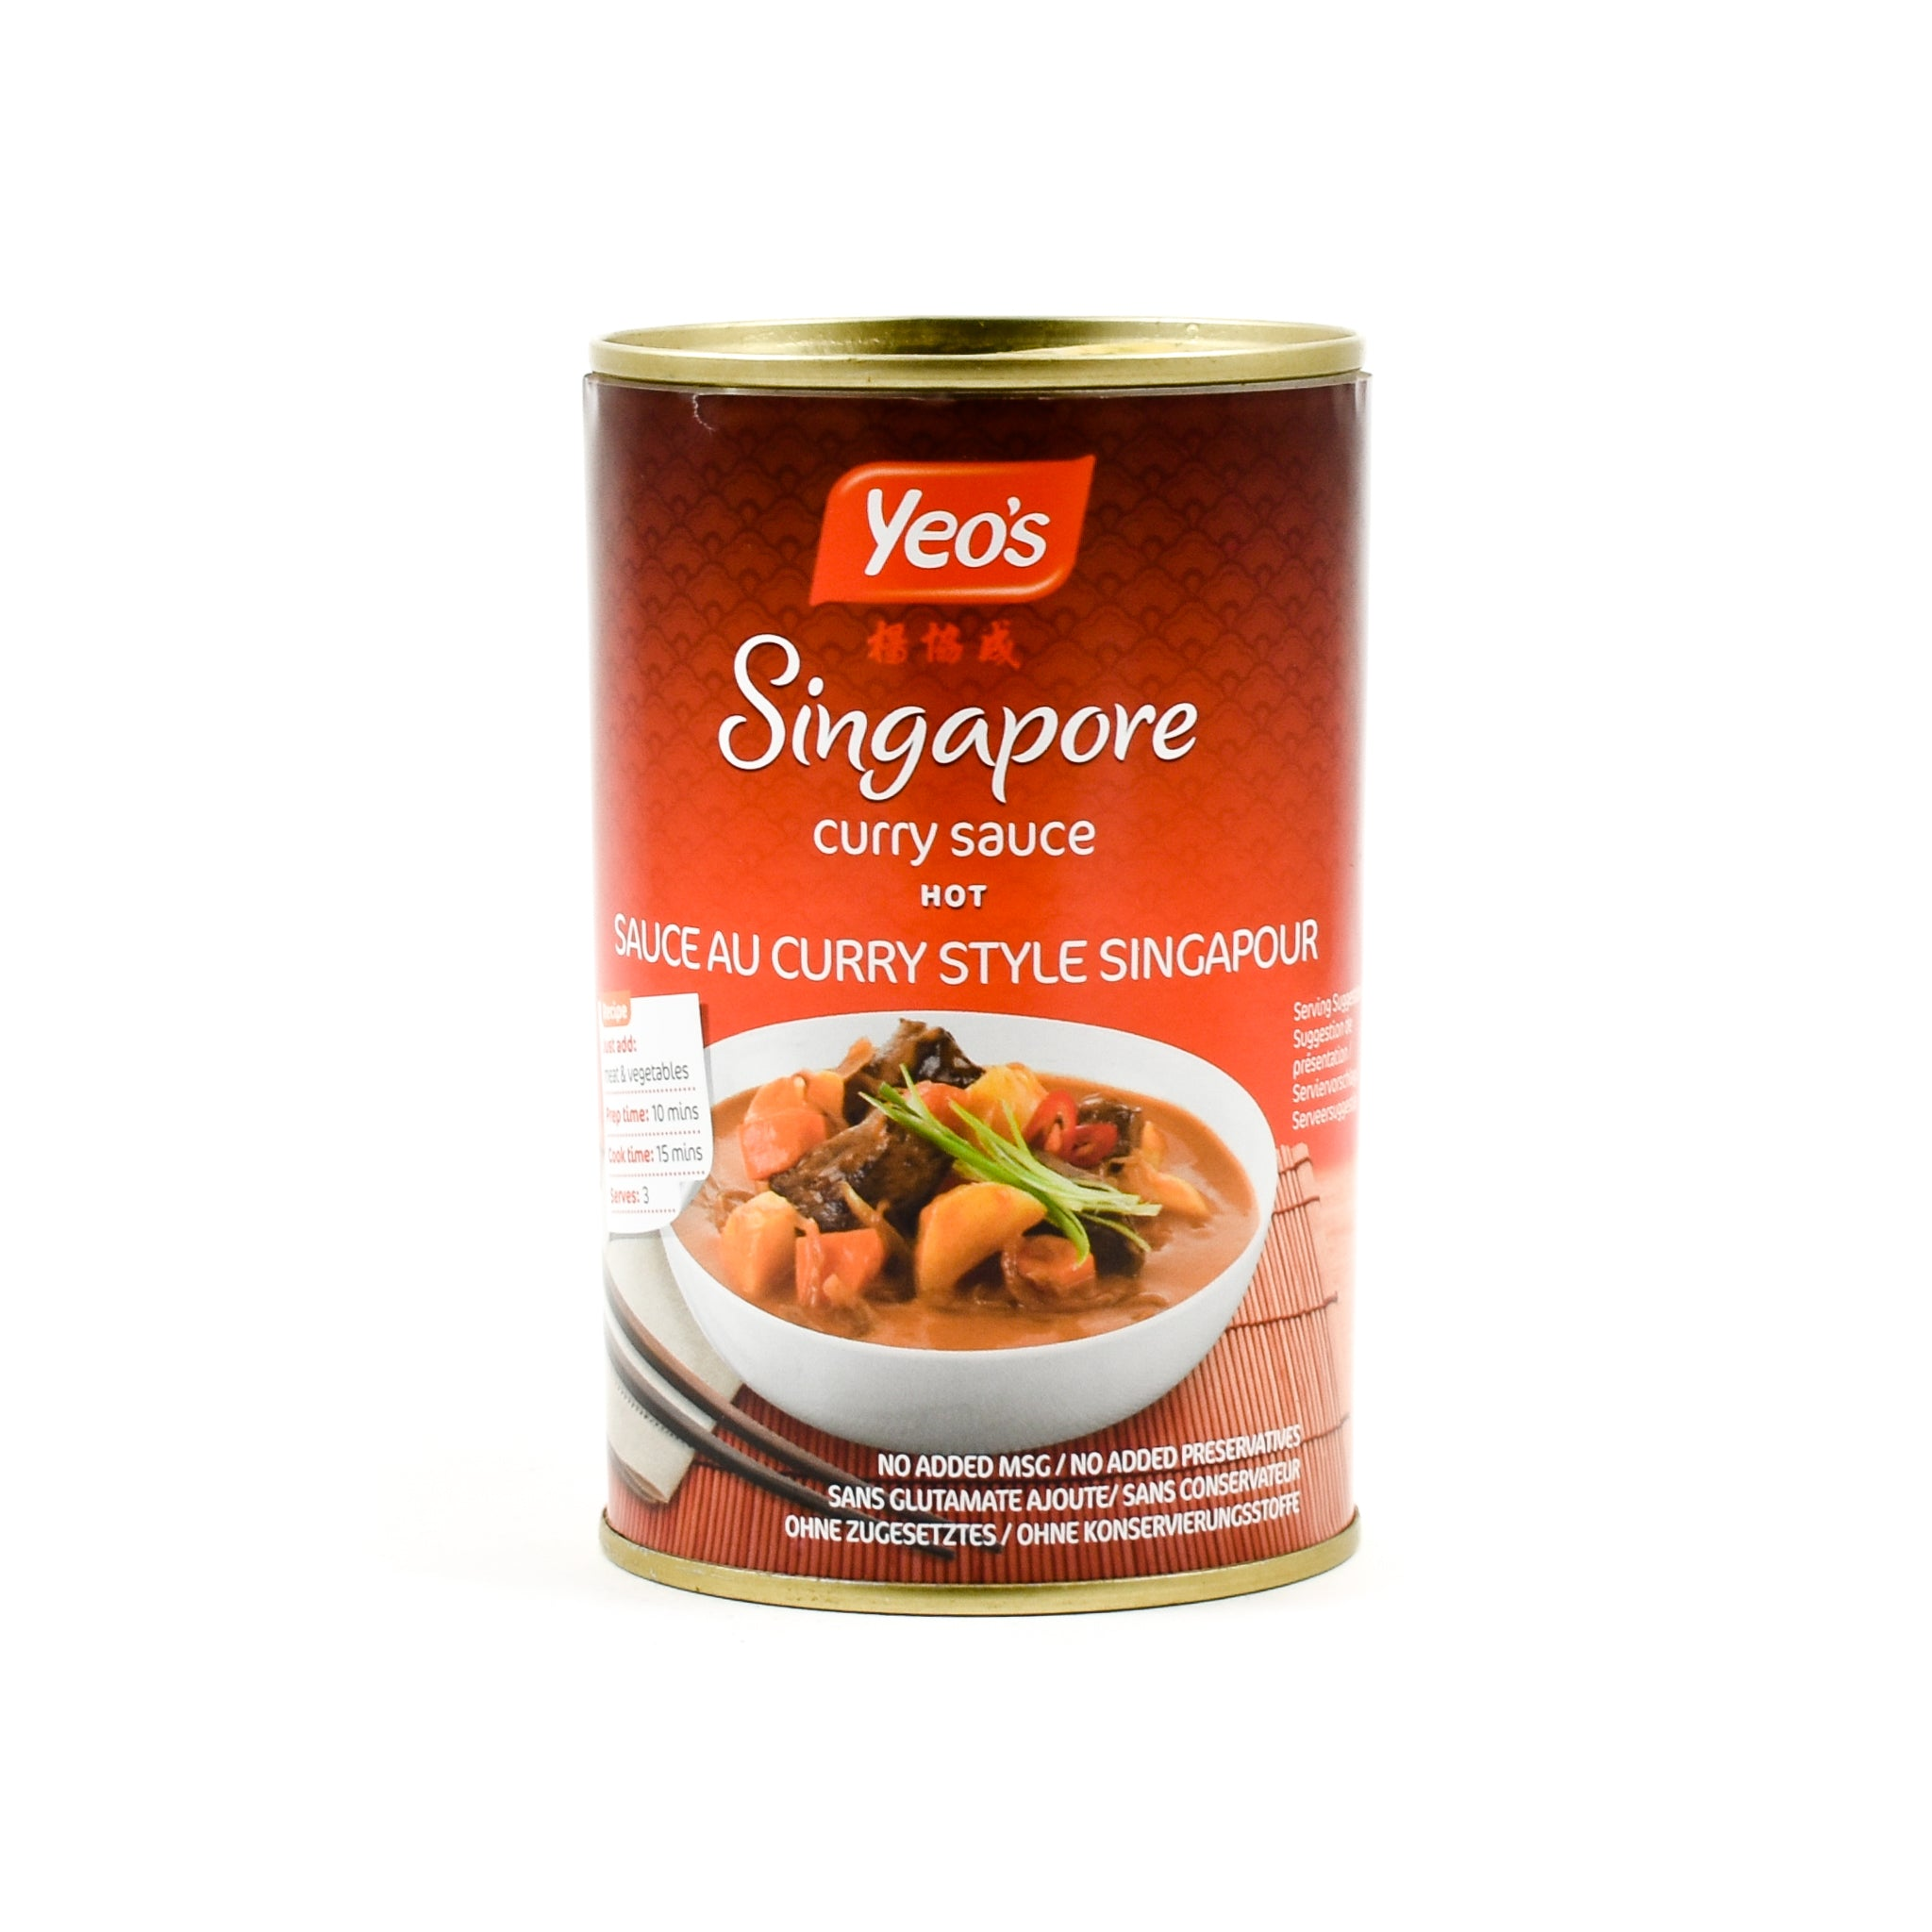 Yeo's Singapore Hot Curry Sauce 400ml Ingredients Sauces & Condiments Asian Sauces & Condiments Southeast Asian Food